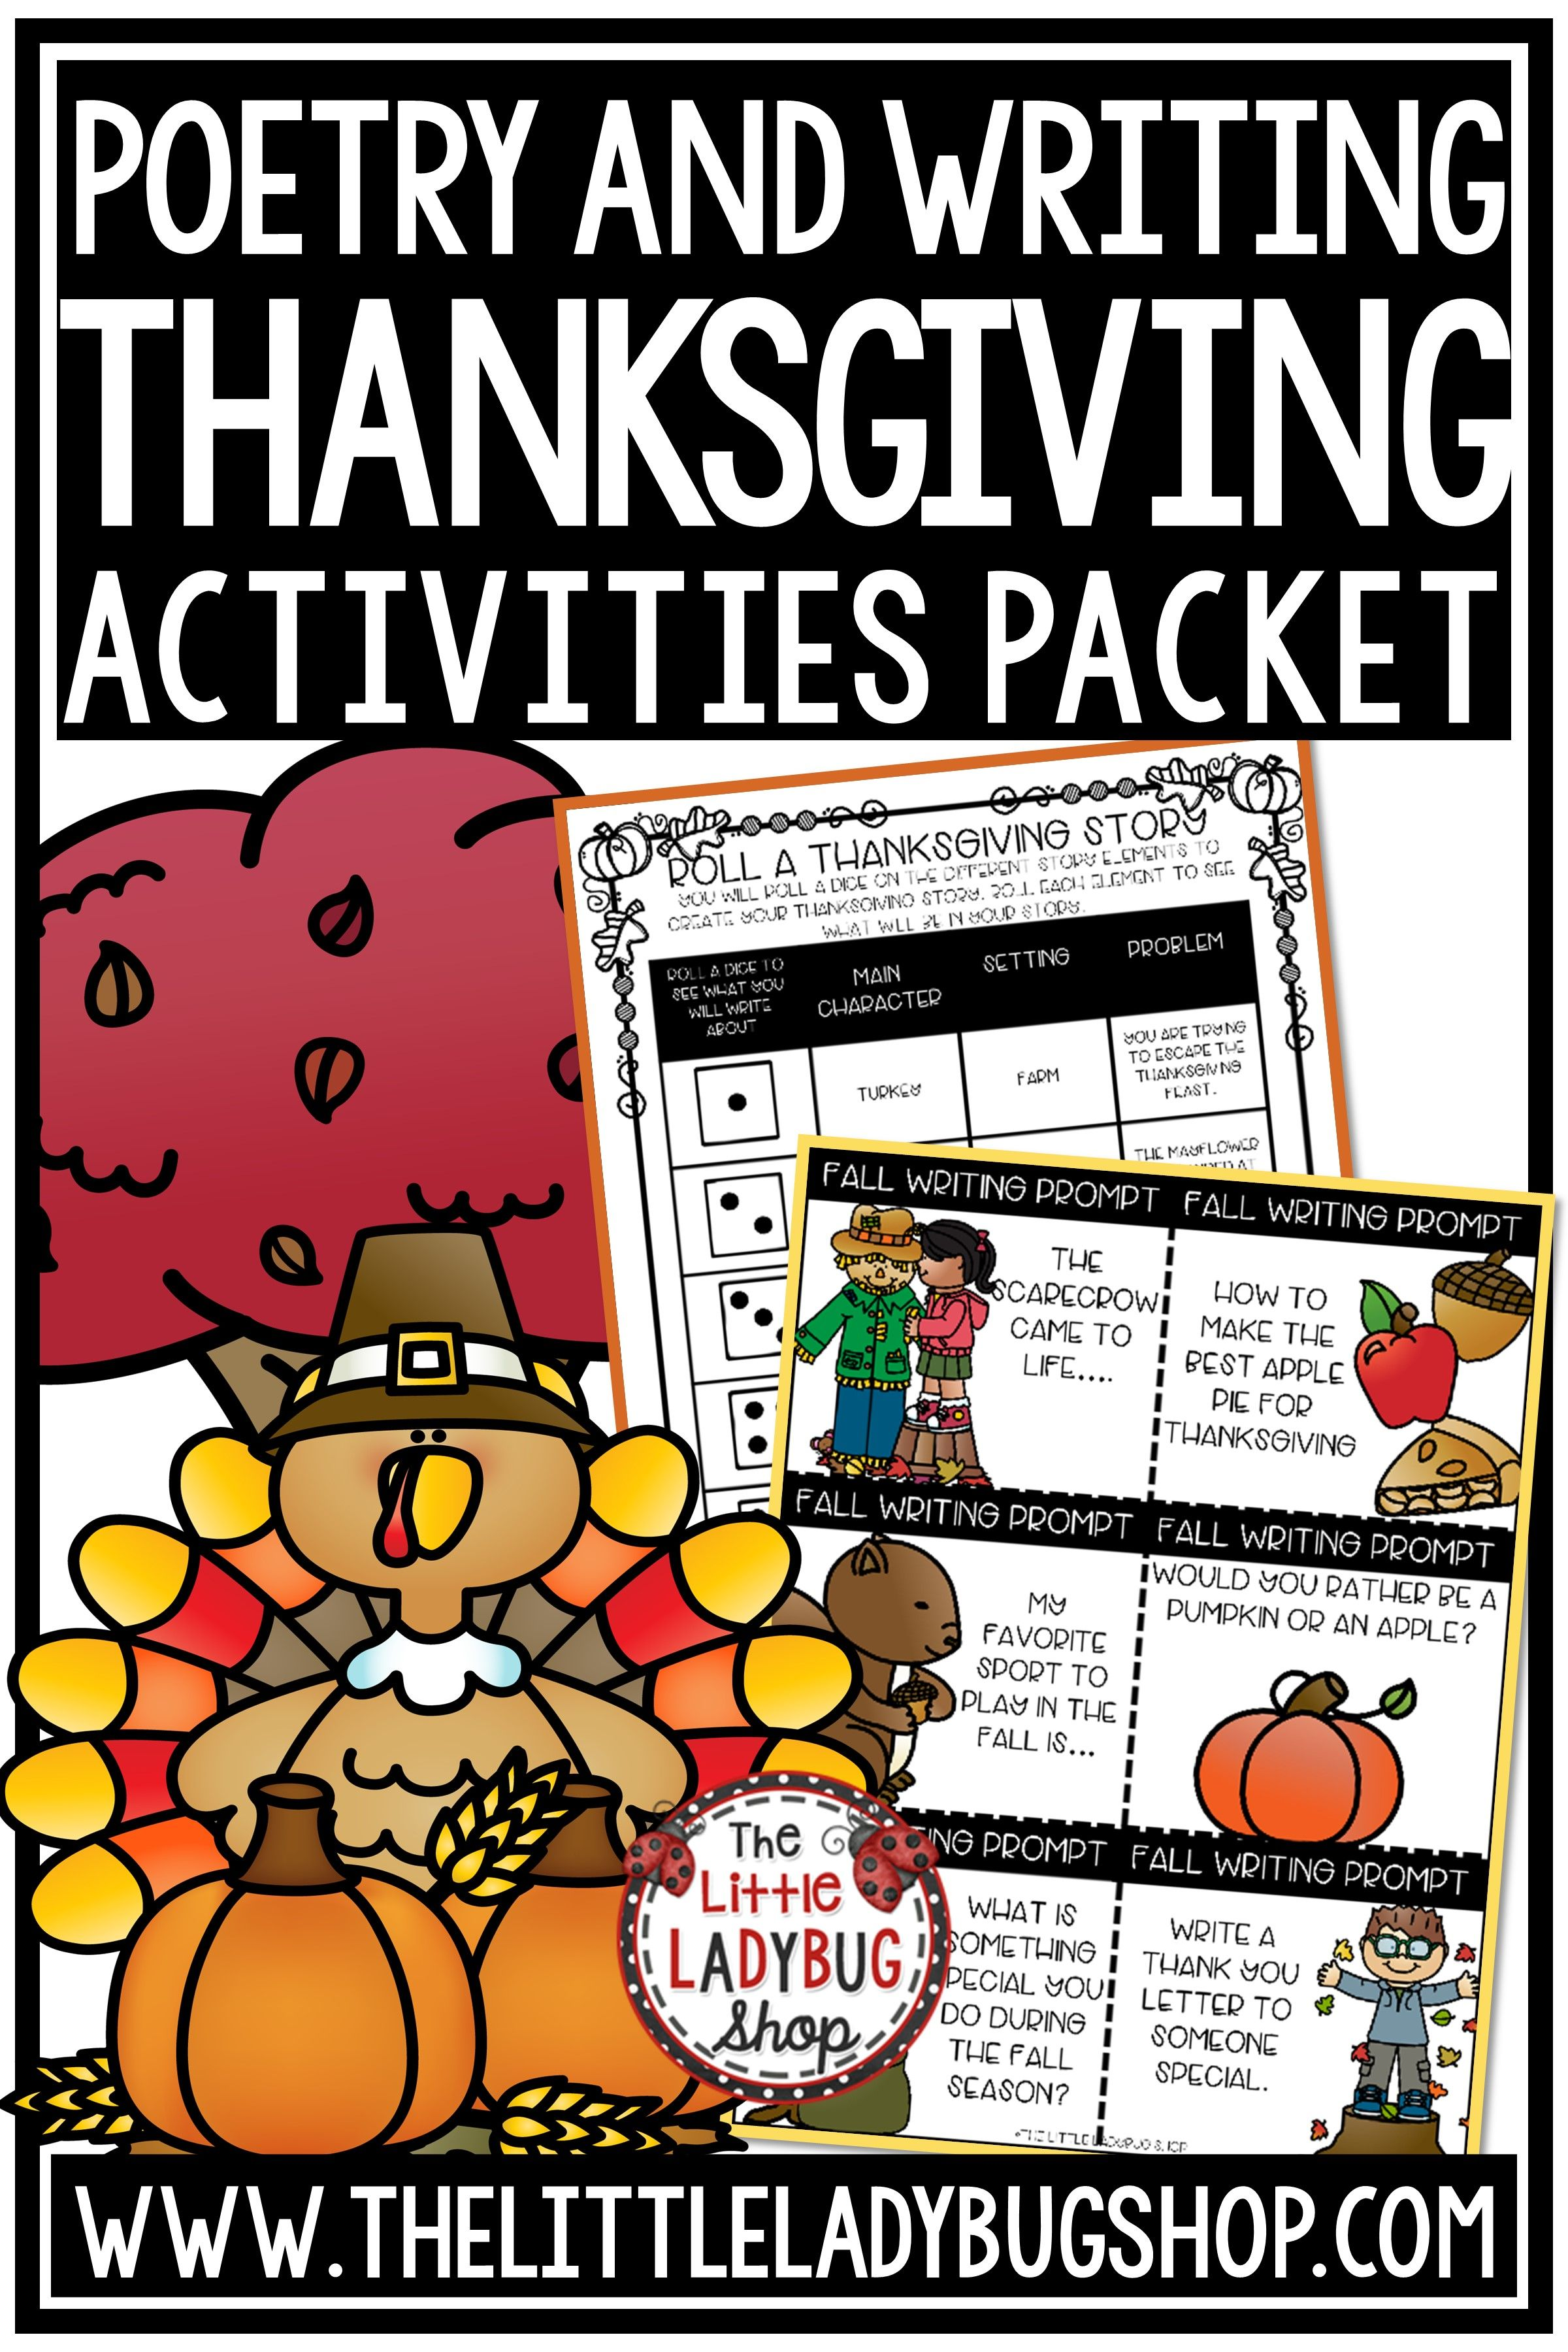 Are You Looking For Engaging Thanksgiving Writing And Poetry Activities For Your S Thanksgiving Writing Thanksgiving Activities Thanksgiving Reading Activities [ 3600 x 2400 Pixel ]